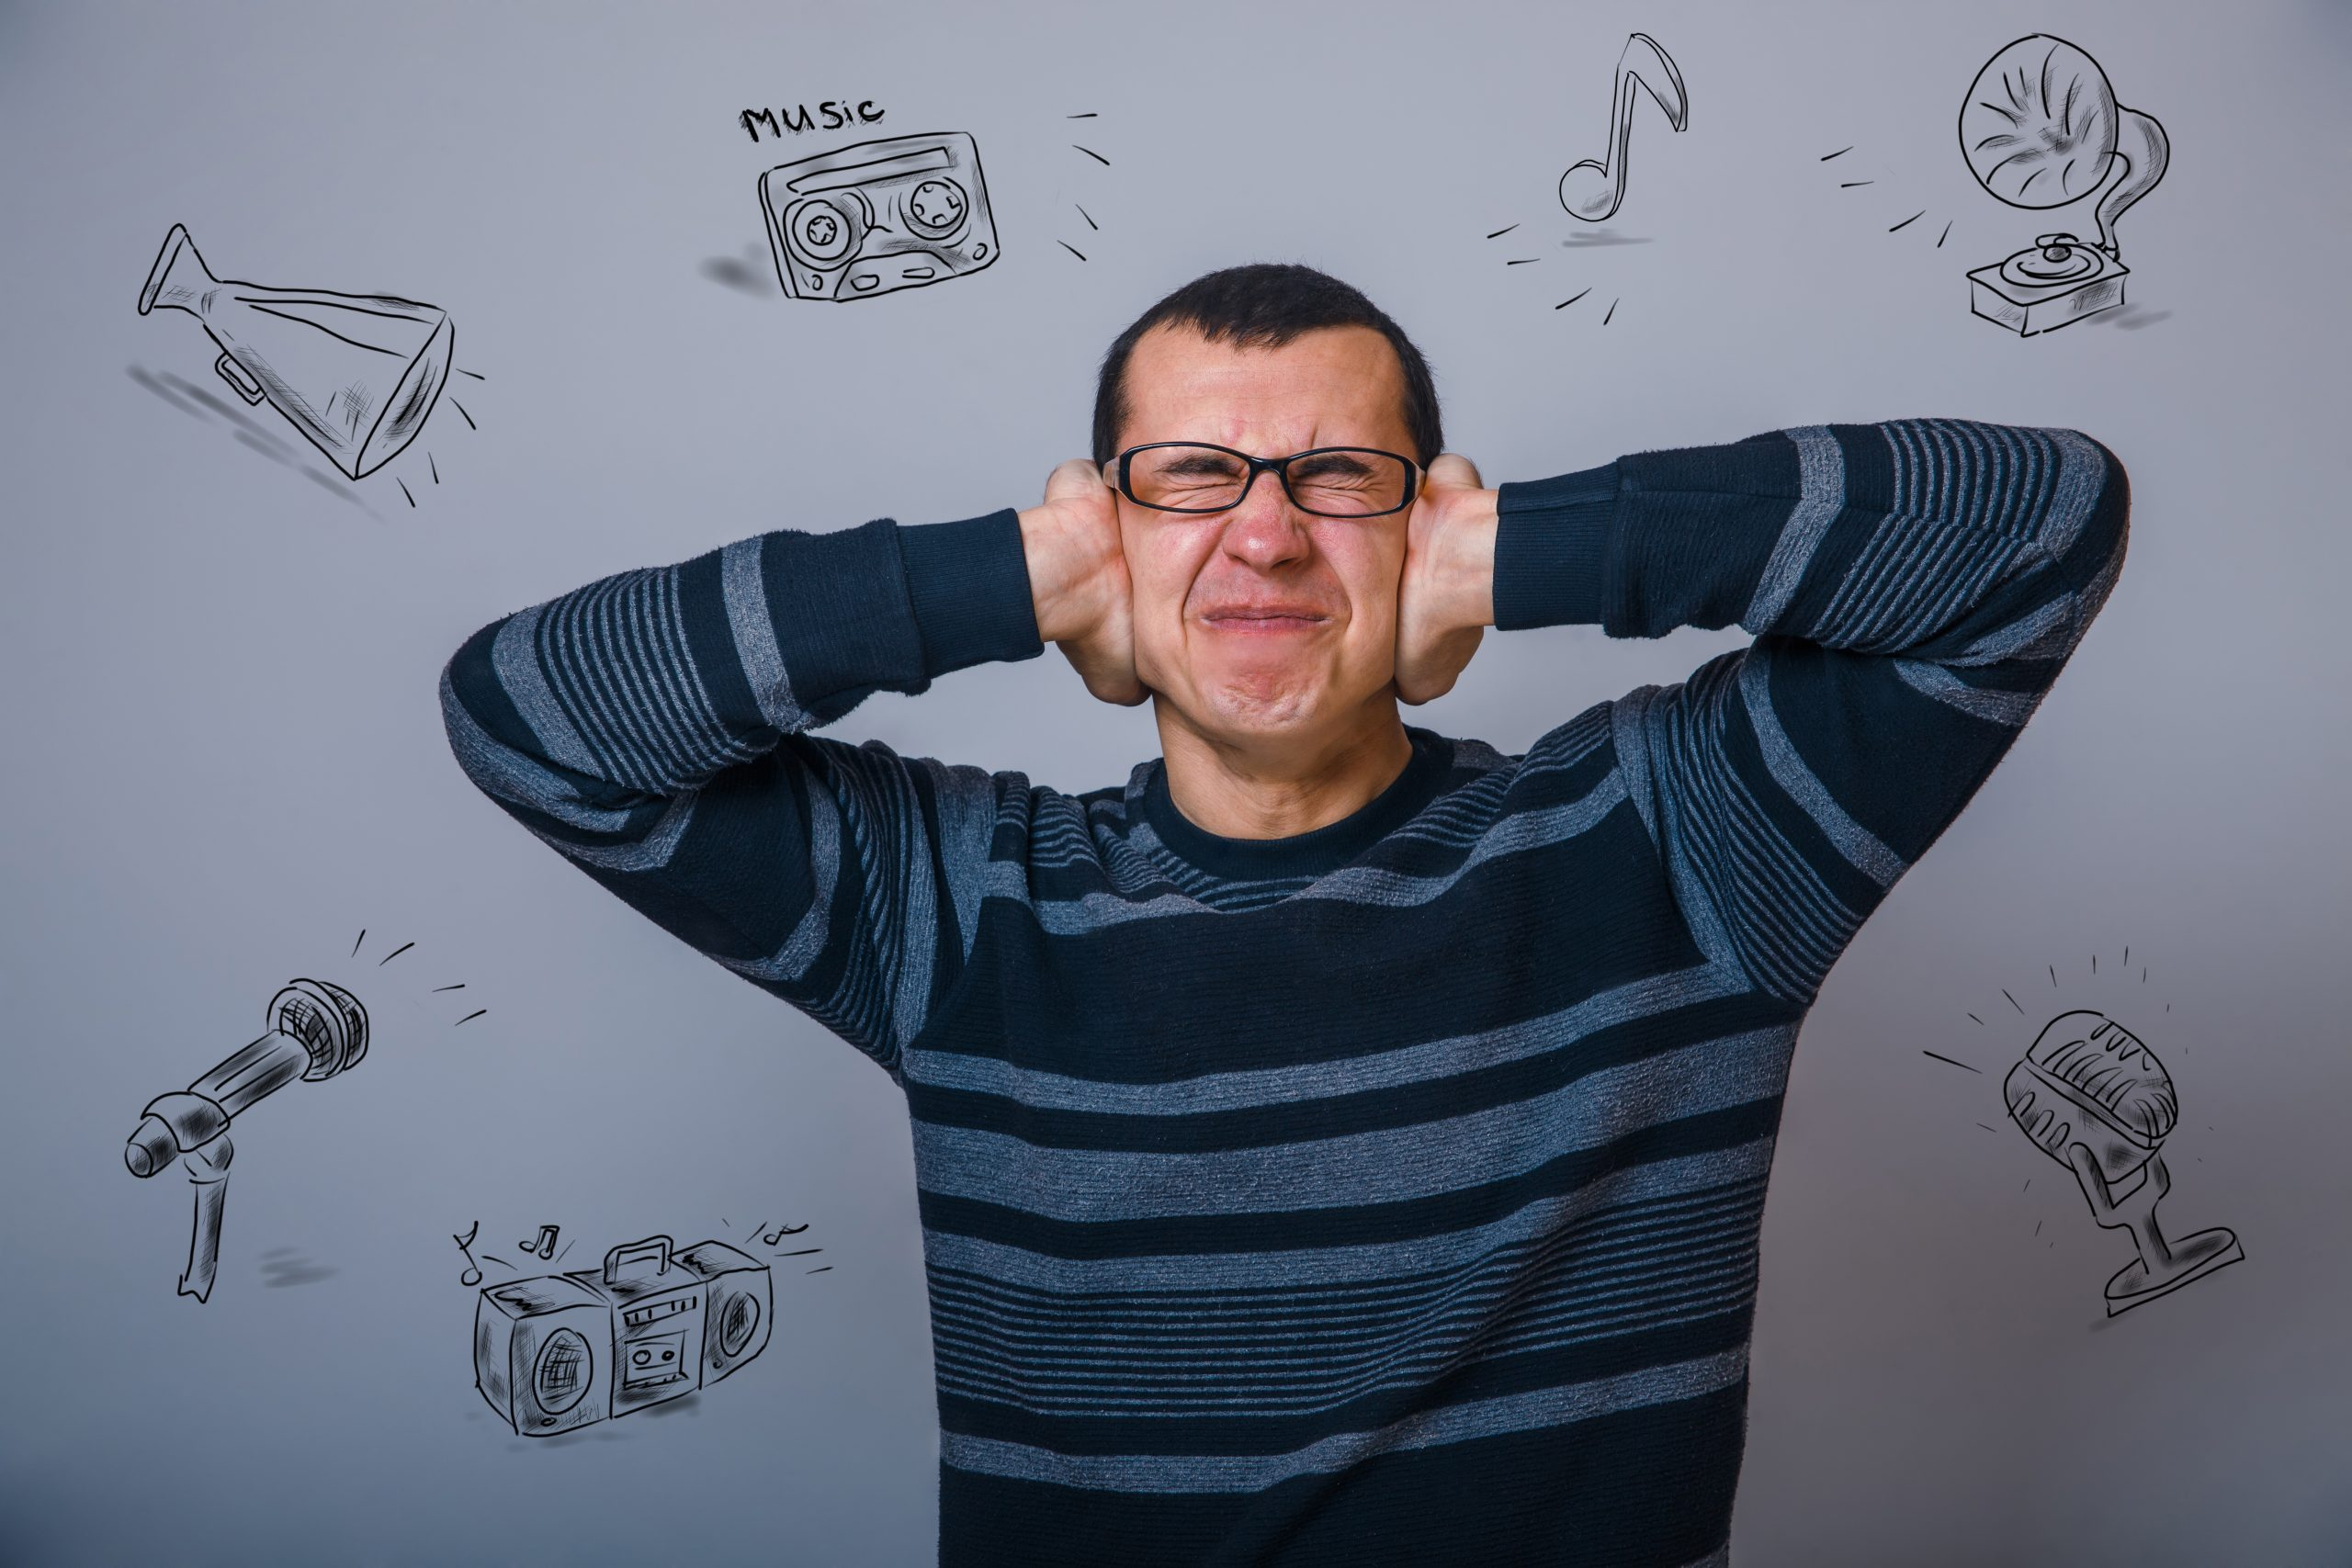 man of thirty years in glasses covering his ears, in front of grey background covered with sketches of vaarious sources of loud sounds.